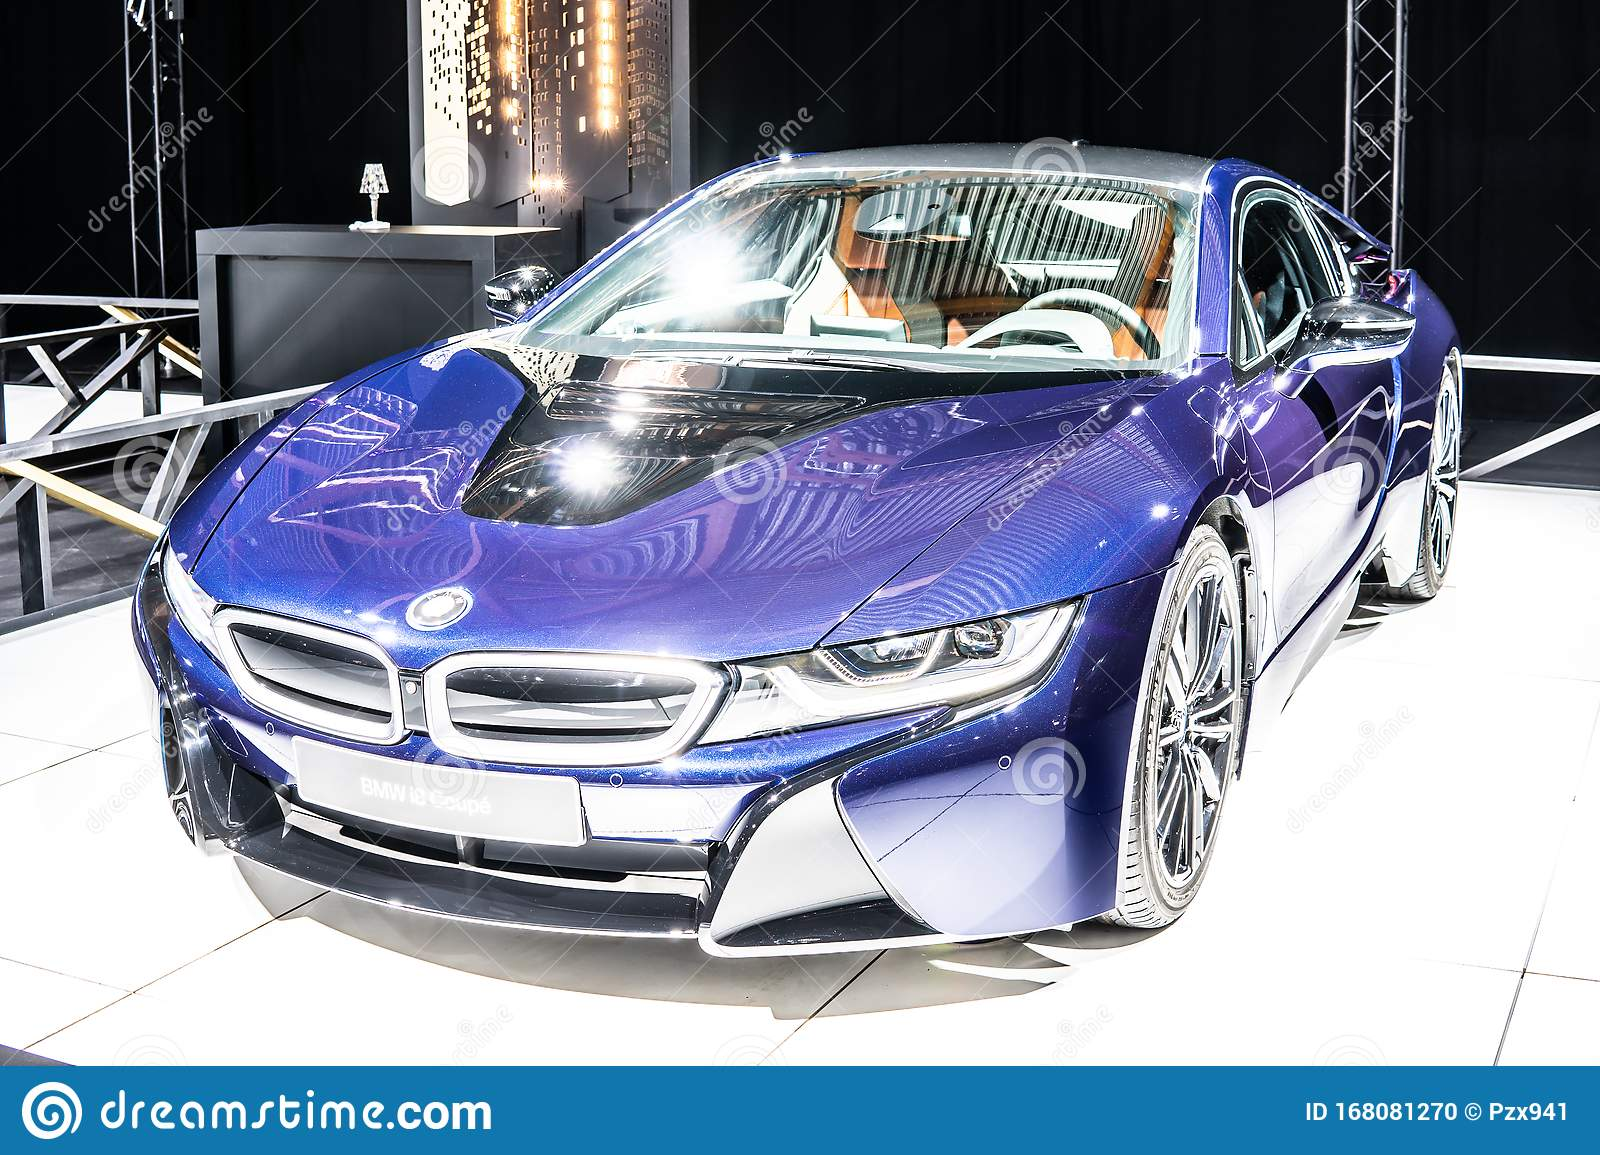 Electric Bmw I8 Coupe At Brussels Motor Show Eco Friendly Car Manufactured And Marketed By Bmw Editorial Image Image Of Engine Autoshow 168081270